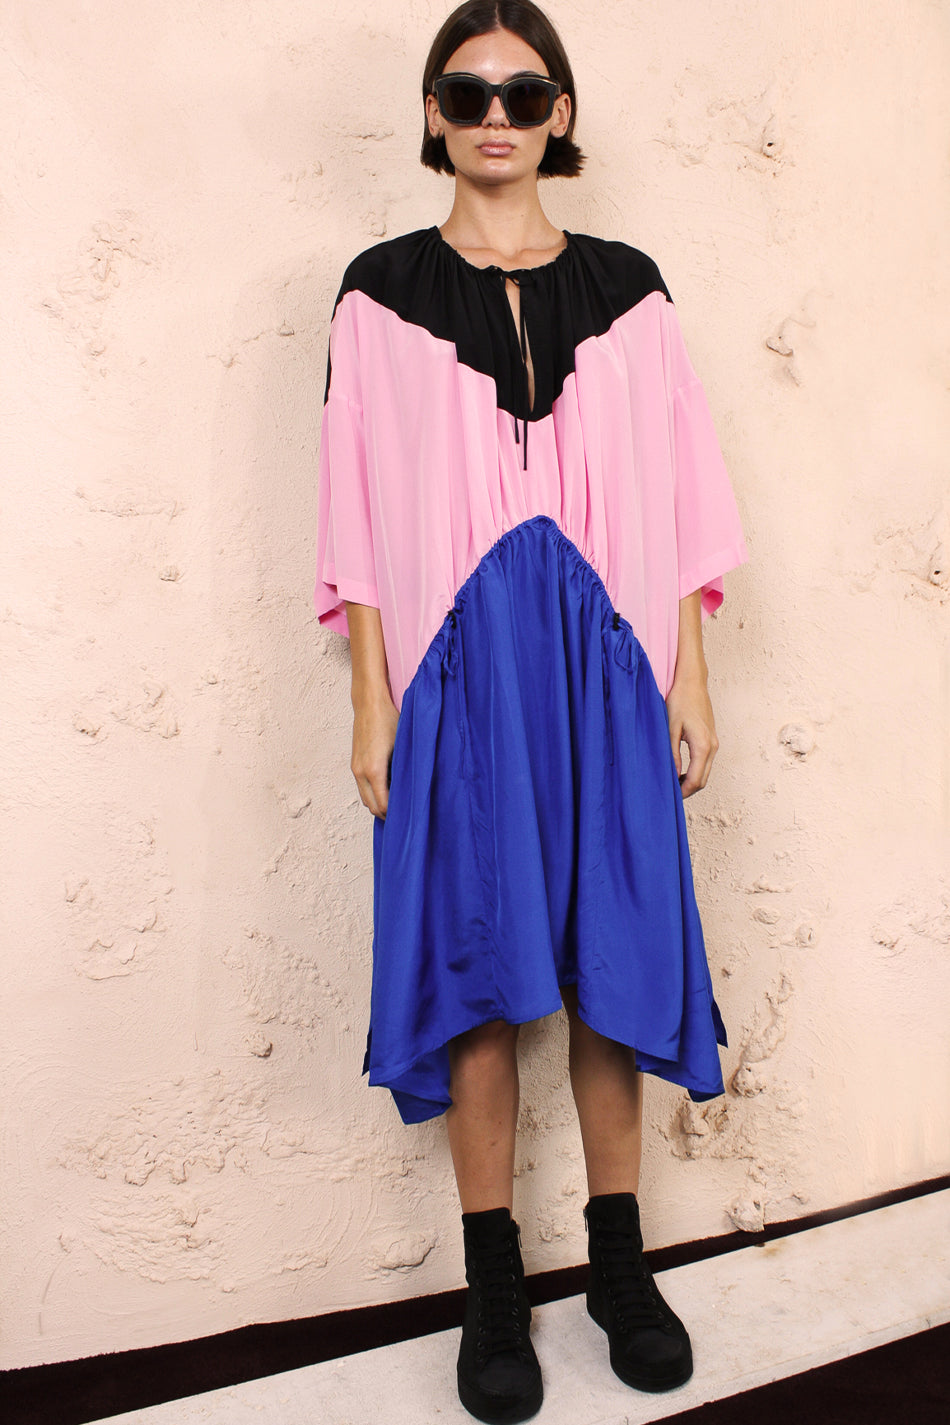 Dakai Pink and Blue Dress